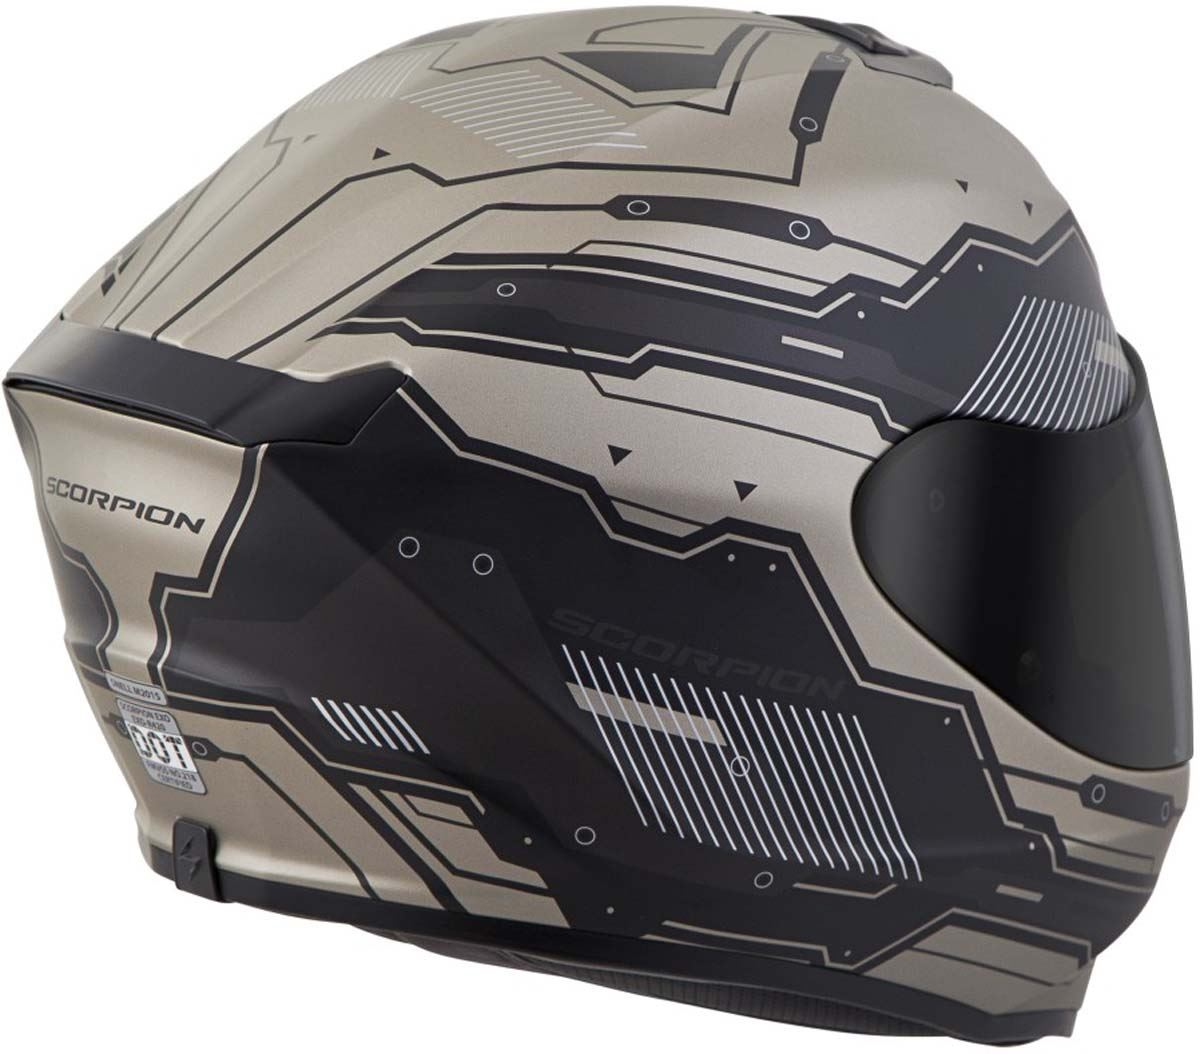 Scorpion-EXO-R420-Helmet-Removable-Liner-Air-Flow-DOT-SNELL-M2015-XS-2XL miniature 30